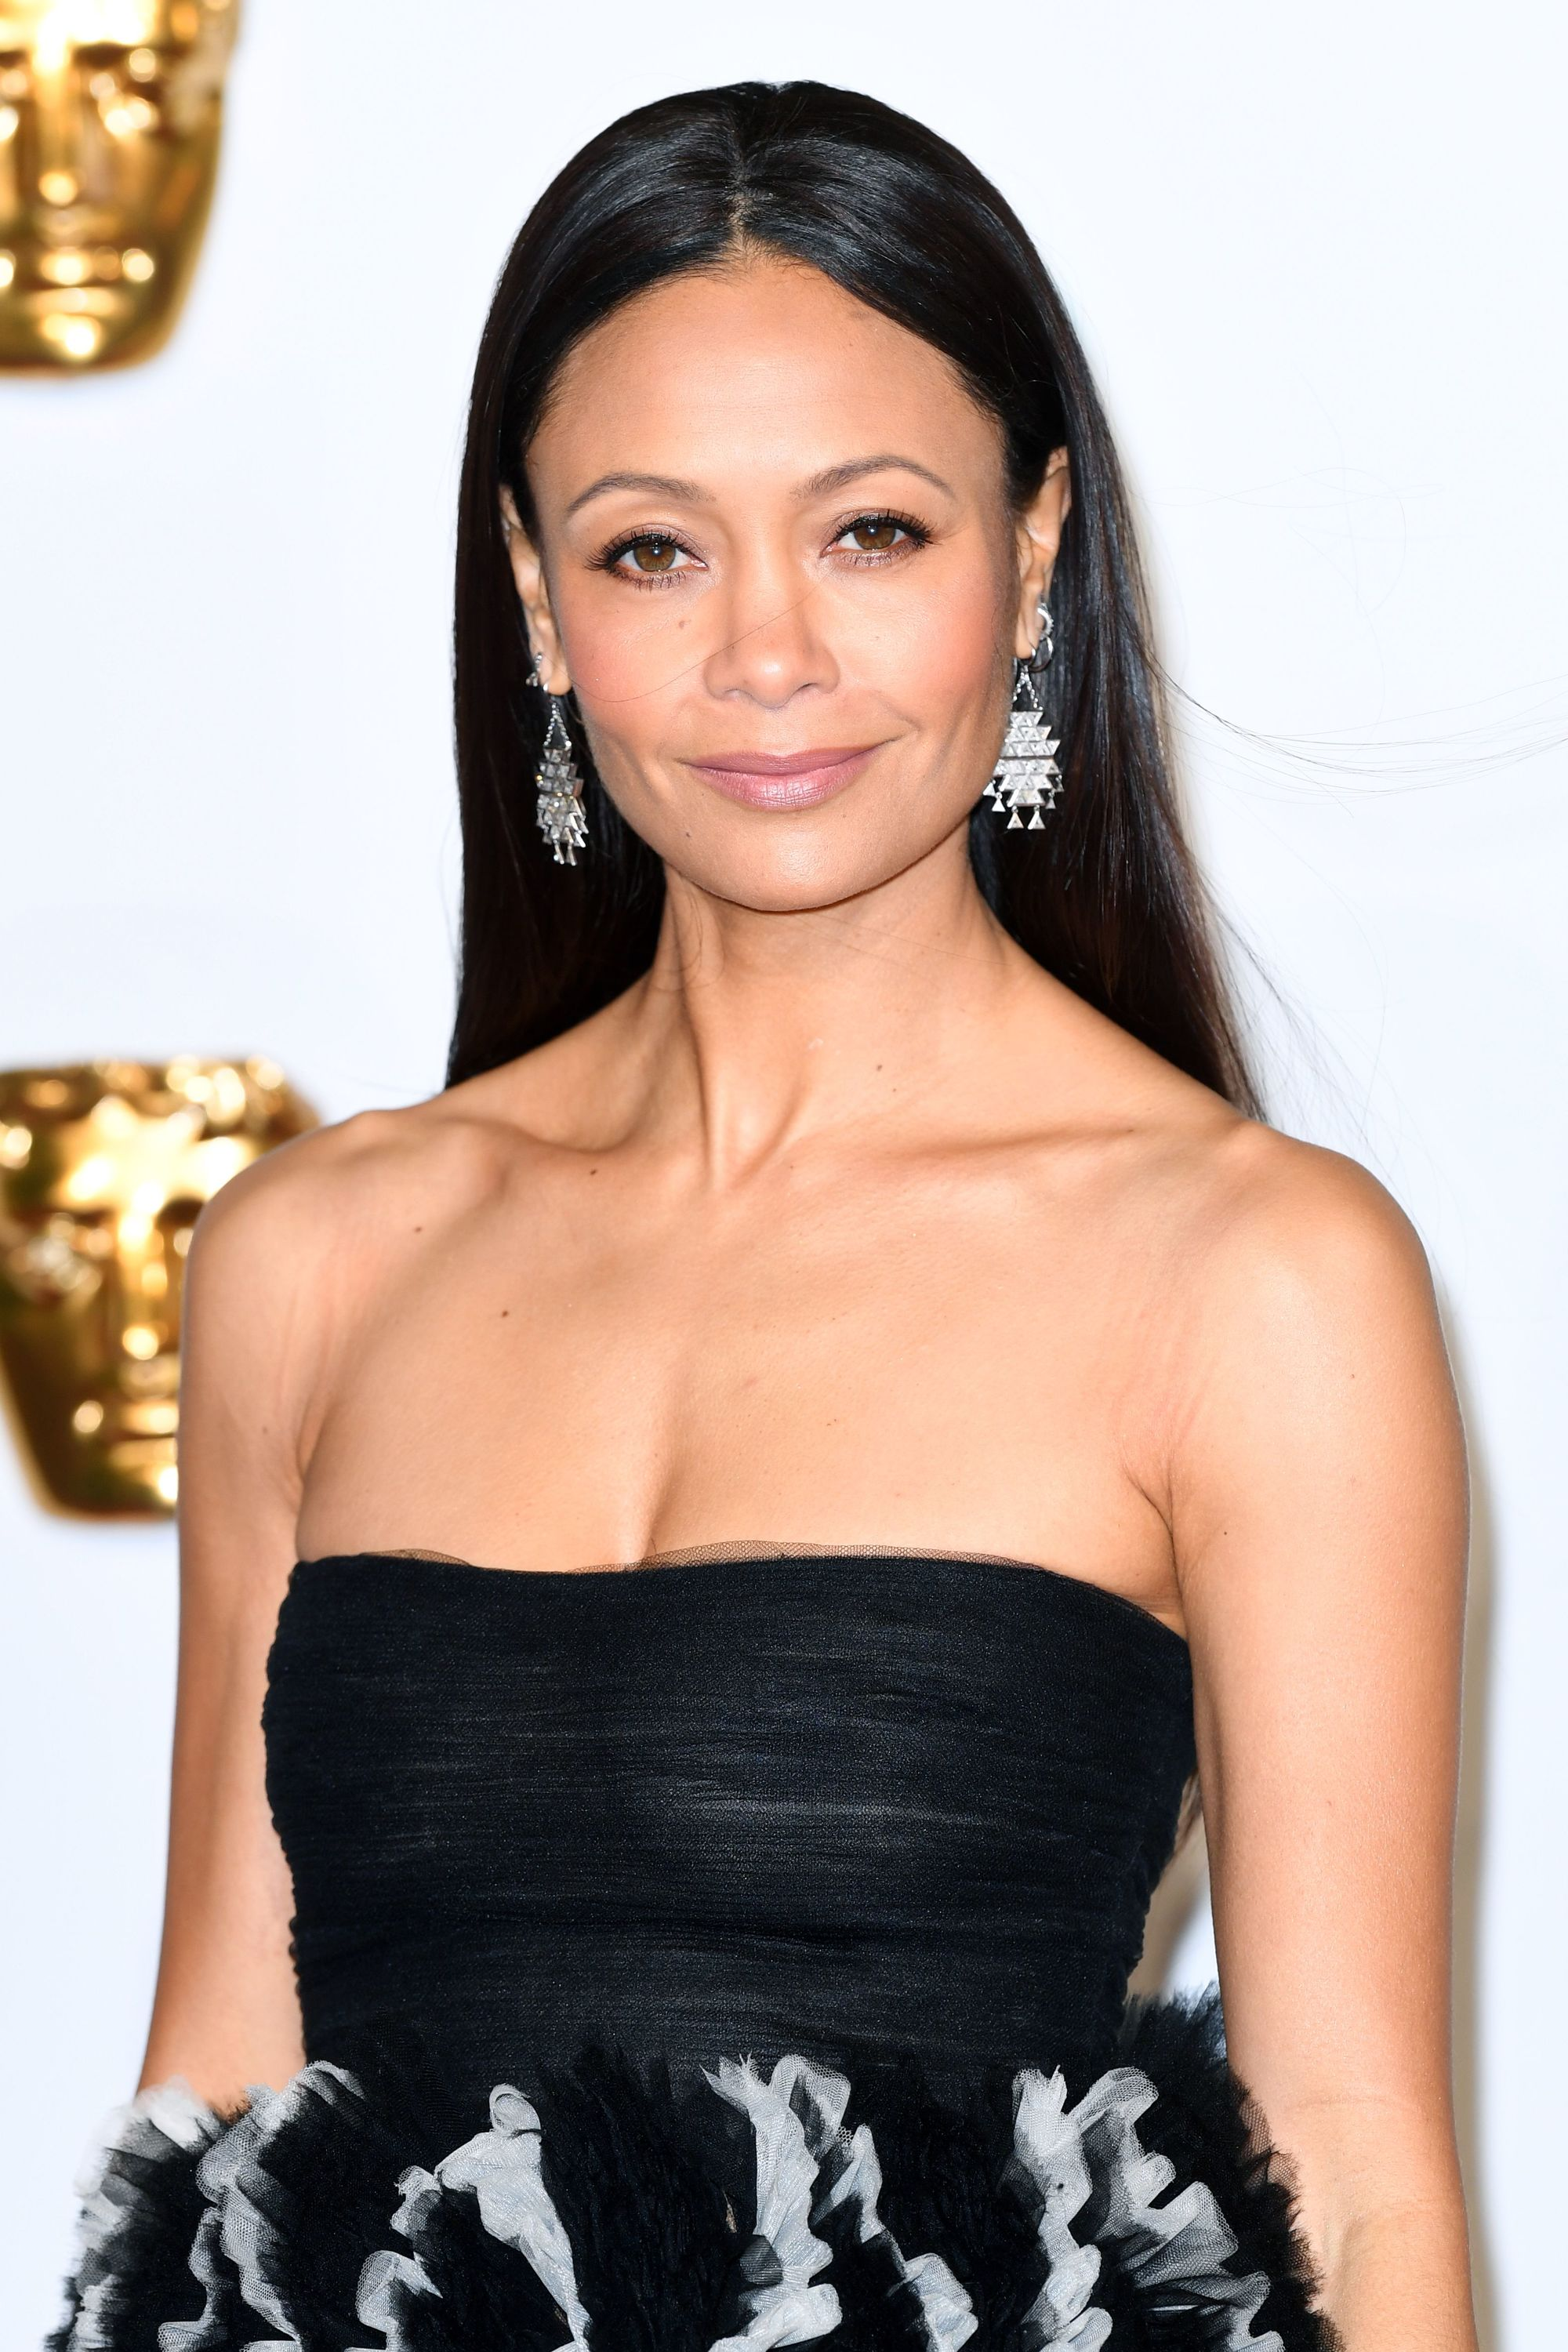 BAFTAs hairstyles: Thandie Newton with long straight dark brown hair wearing a black strapless dress and drop earrings on the red carpet.